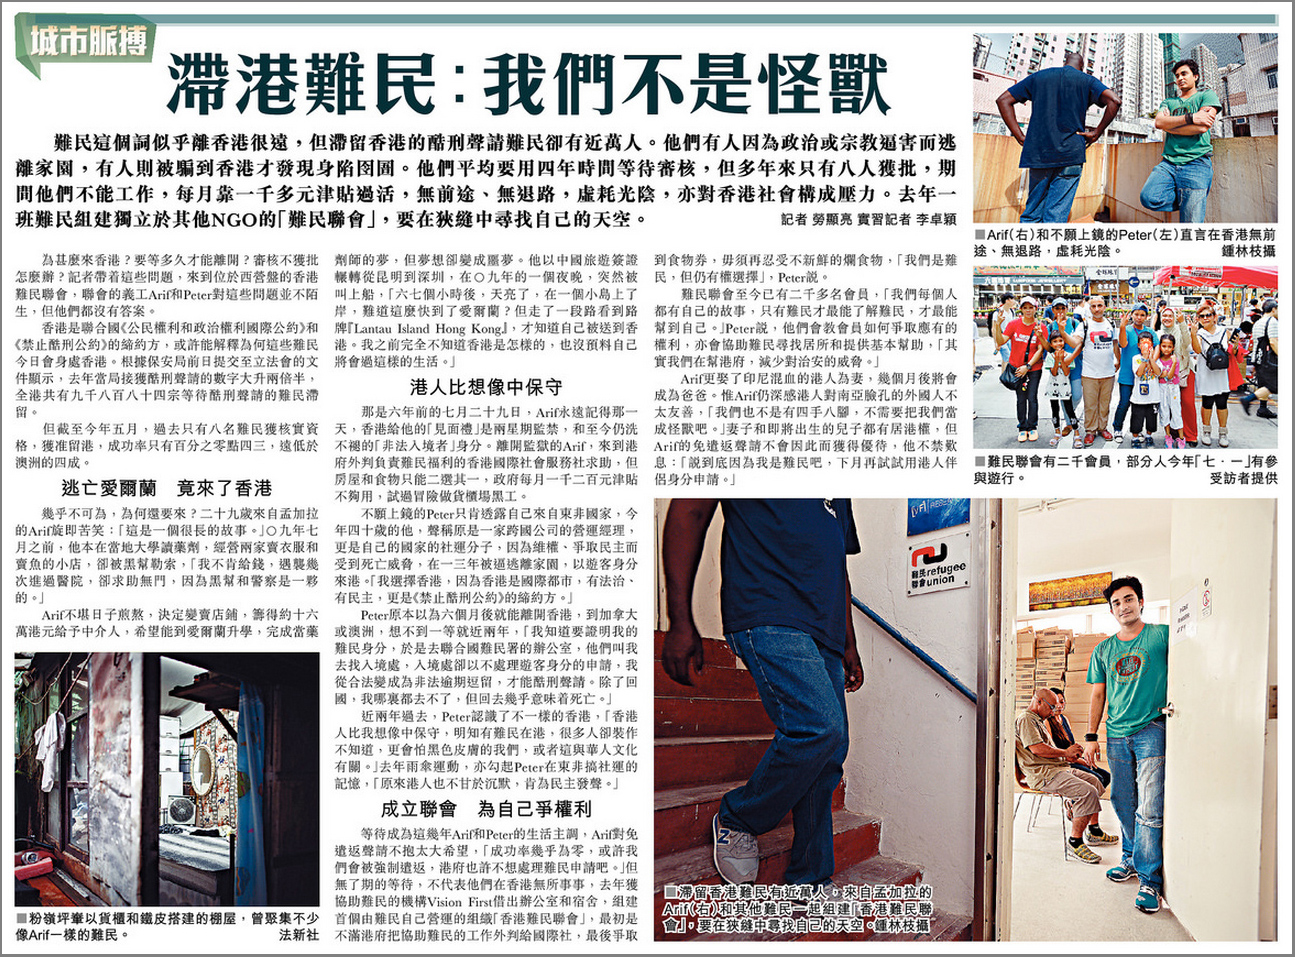 Sing Tao Daily - article on Refugee Union (5Jul2015)